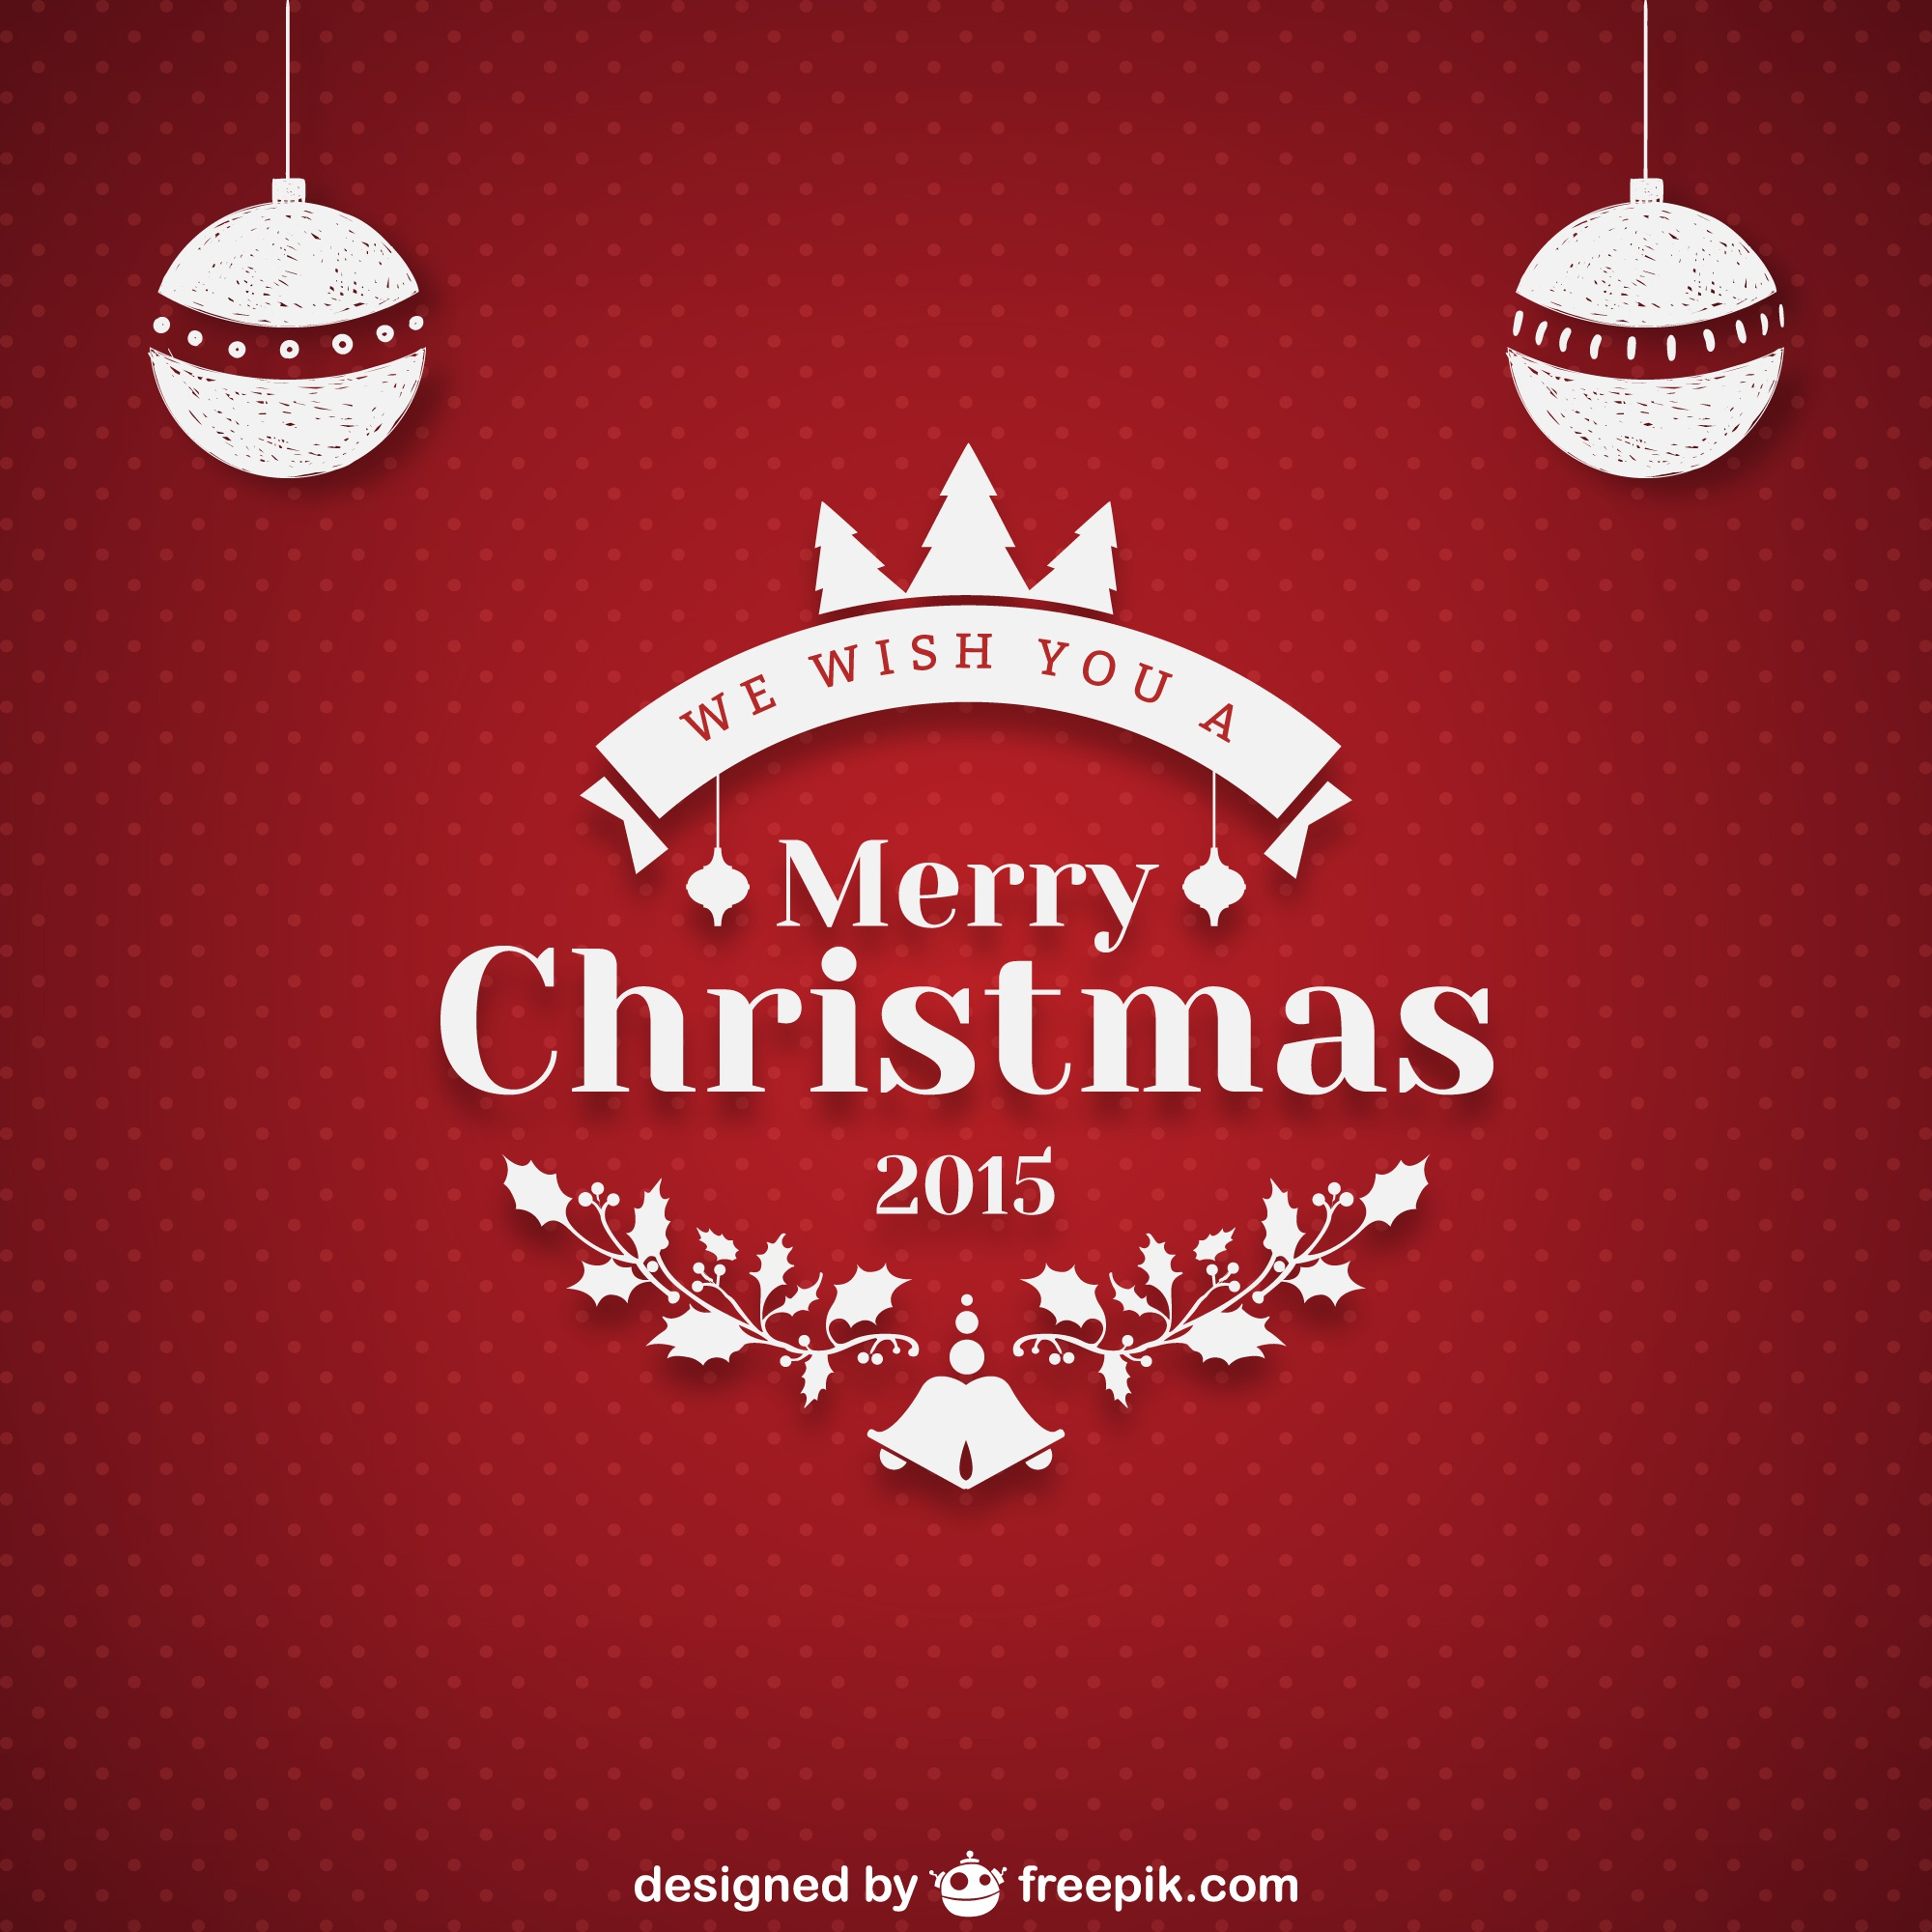 Christmas greeting with red dotted background